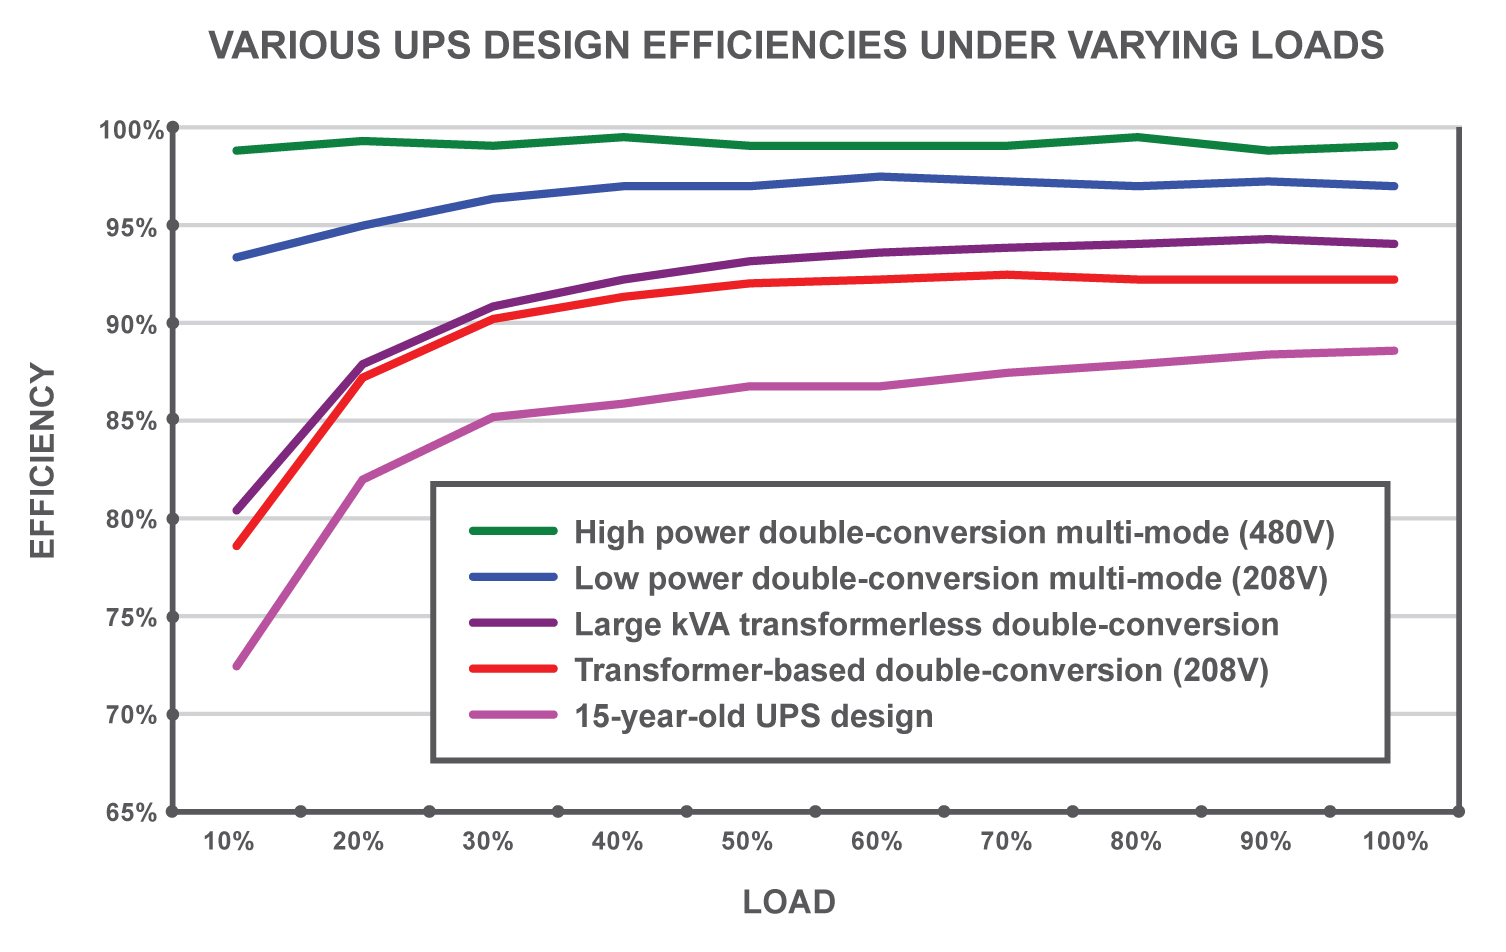 Figure 10. UPSs tend to be less efficient at light loads. New multi-mode UPSs can maintain very high efficiency profiles even at low loads.